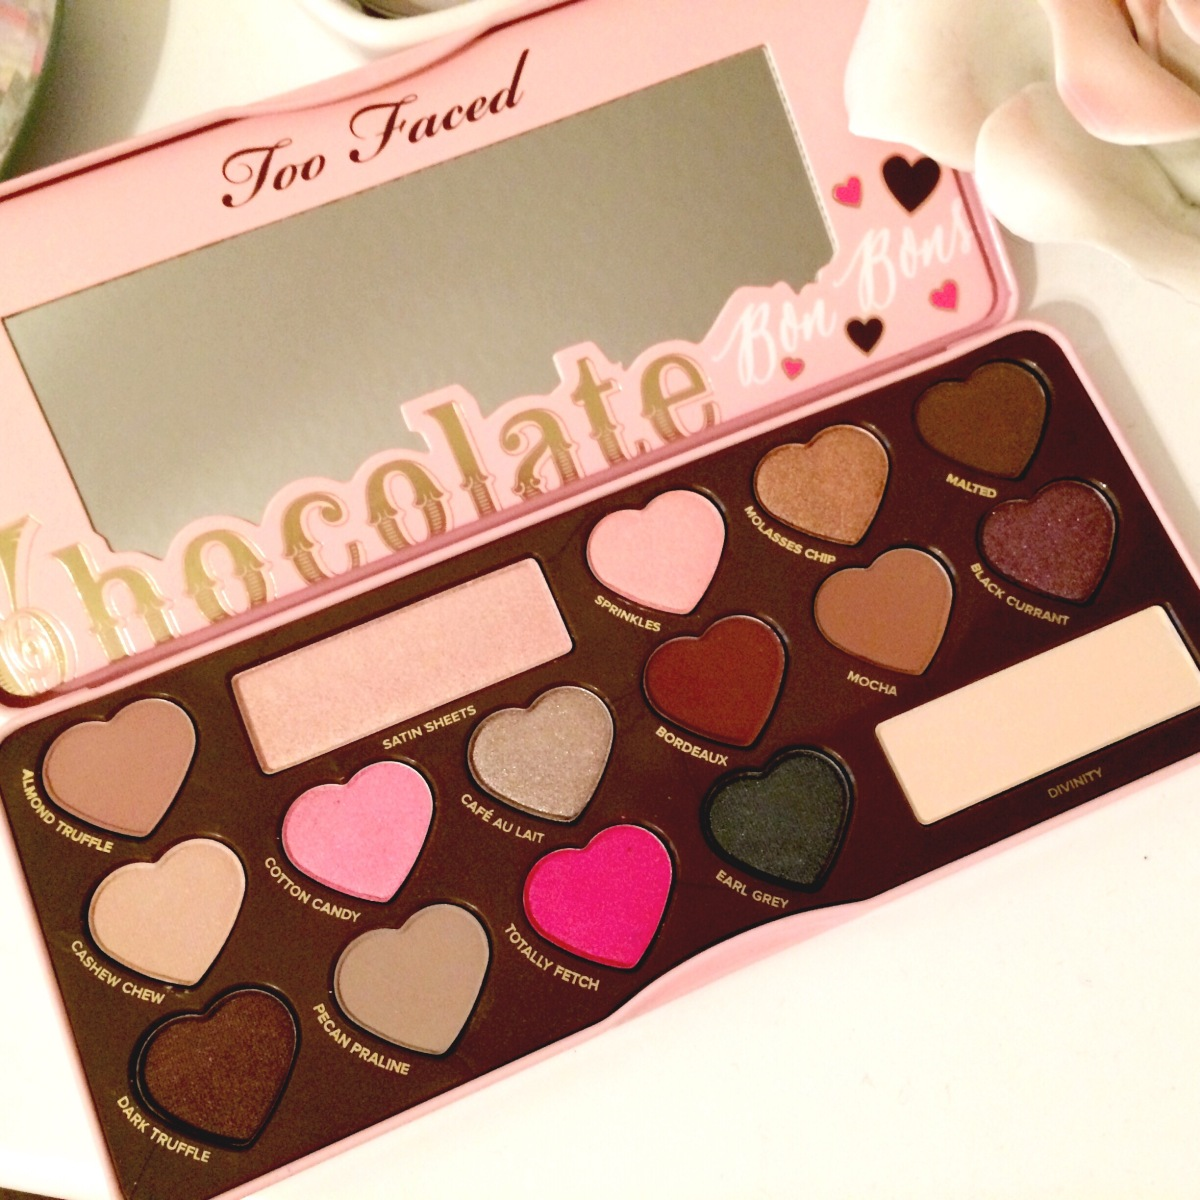 NEW Too Faced Chocolate Bon Bons Palette | Review +Swatches